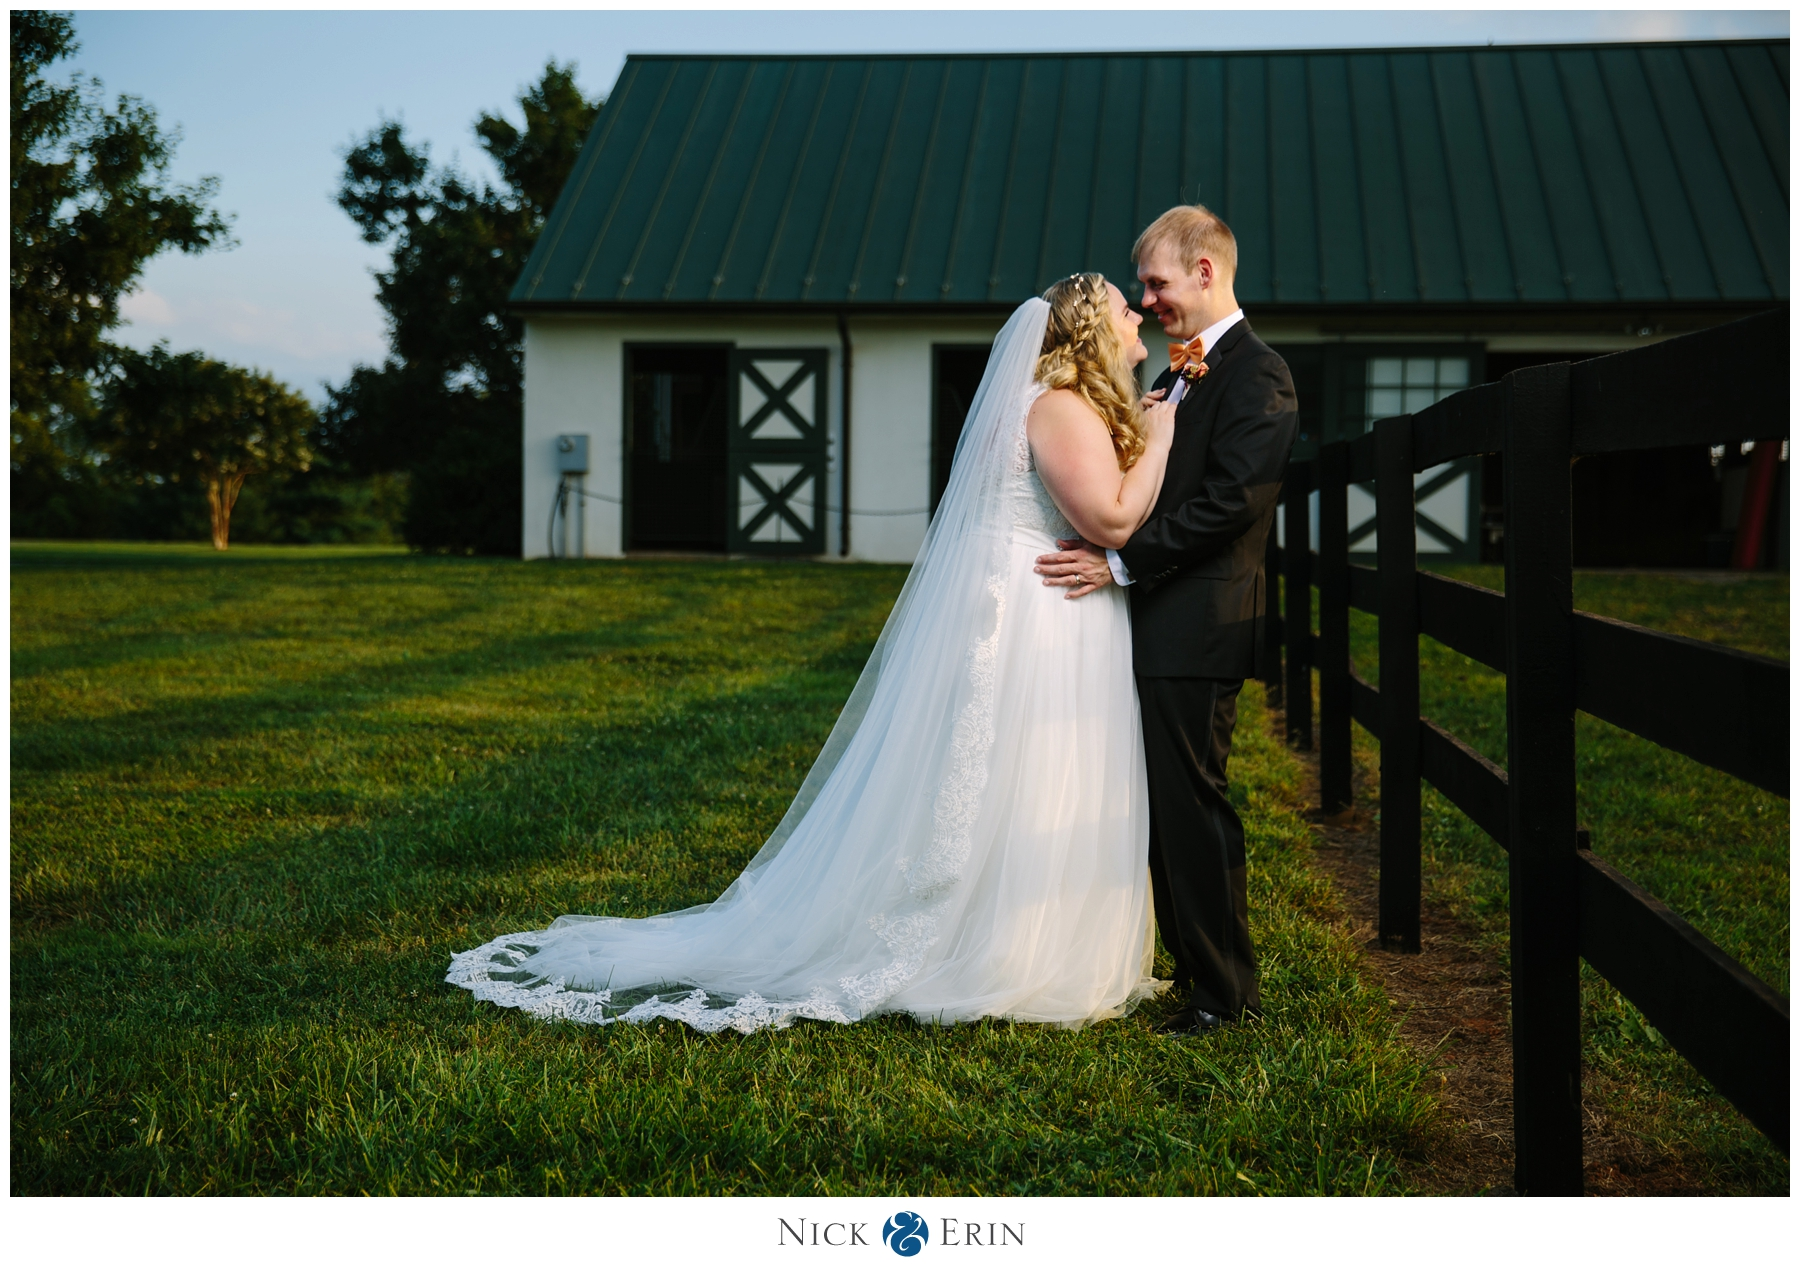 Donner_Photography_Charlottesville Virginia Wedding_Jennifer & Chris_0006a